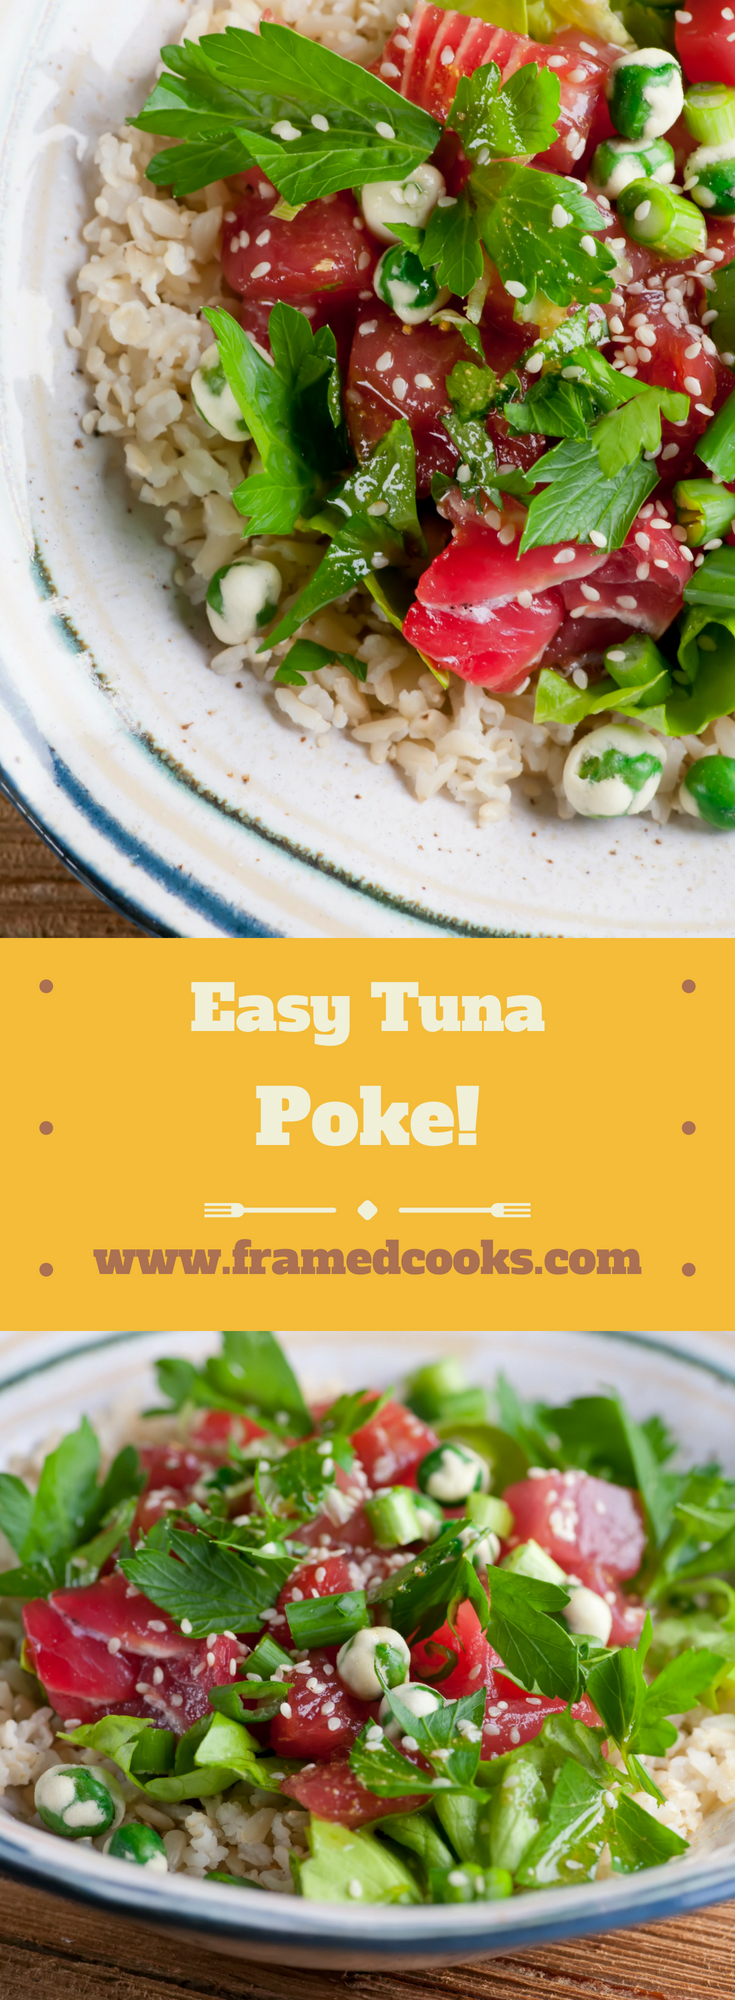 This easy recipe for tuna poke is the perfect and quick way to get delicious seafood dinner on the table.  A fun alternative for all you sushi lovers out there!